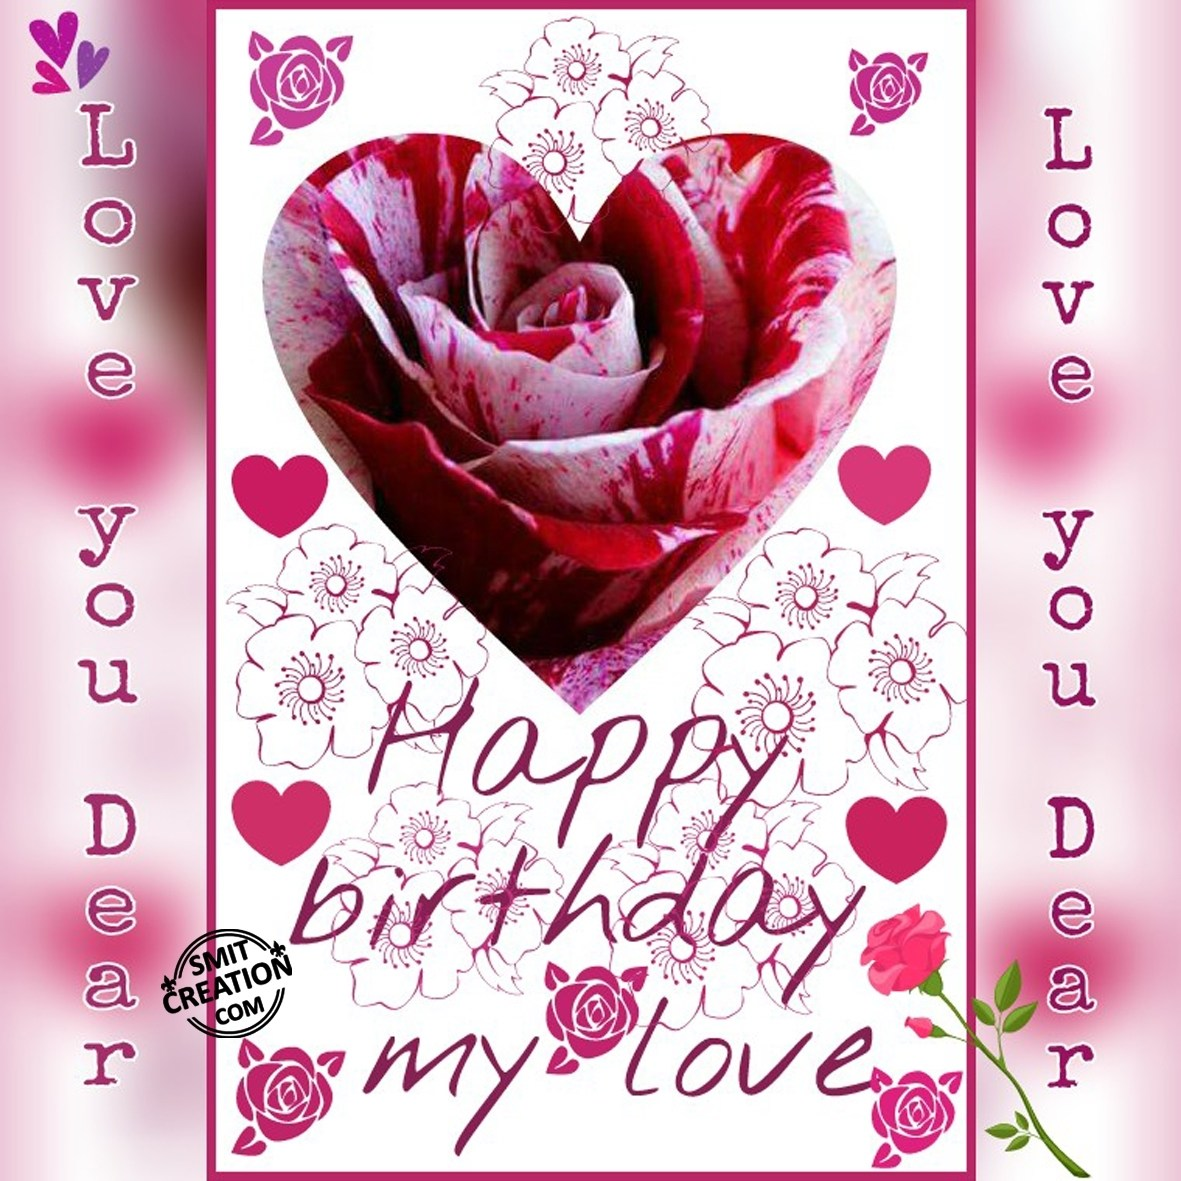 happy birthday wish for lover in hindi ; 2291